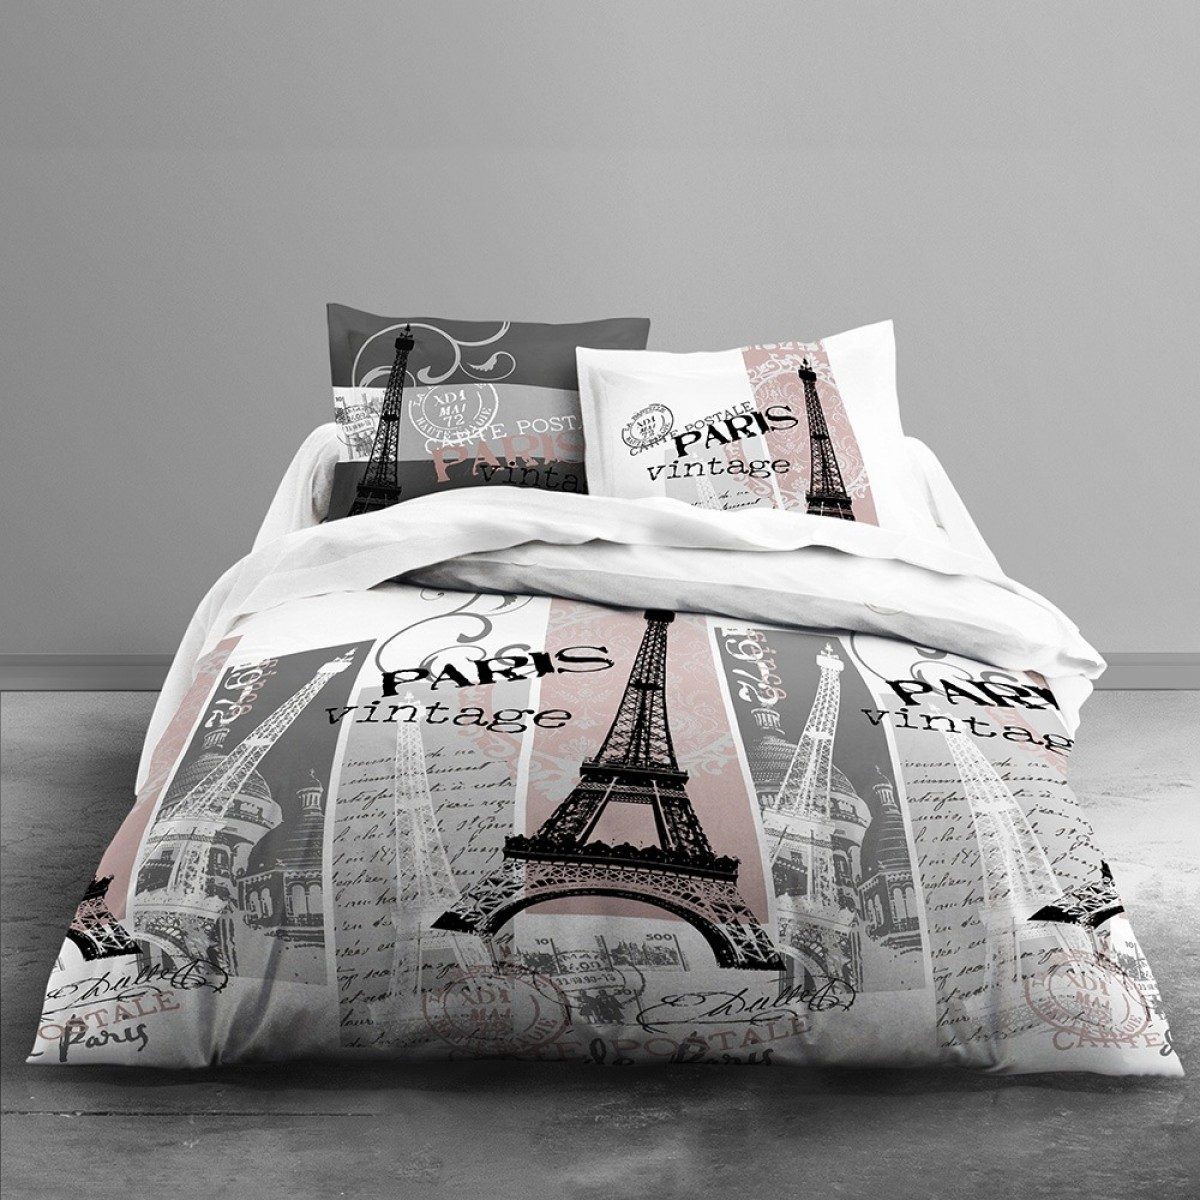 housse de couette vintage paris today 240 x 260 cm avec taies d 39 oreillers 100 coton les. Black Bedroom Furniture Sets. Home Design Ideas